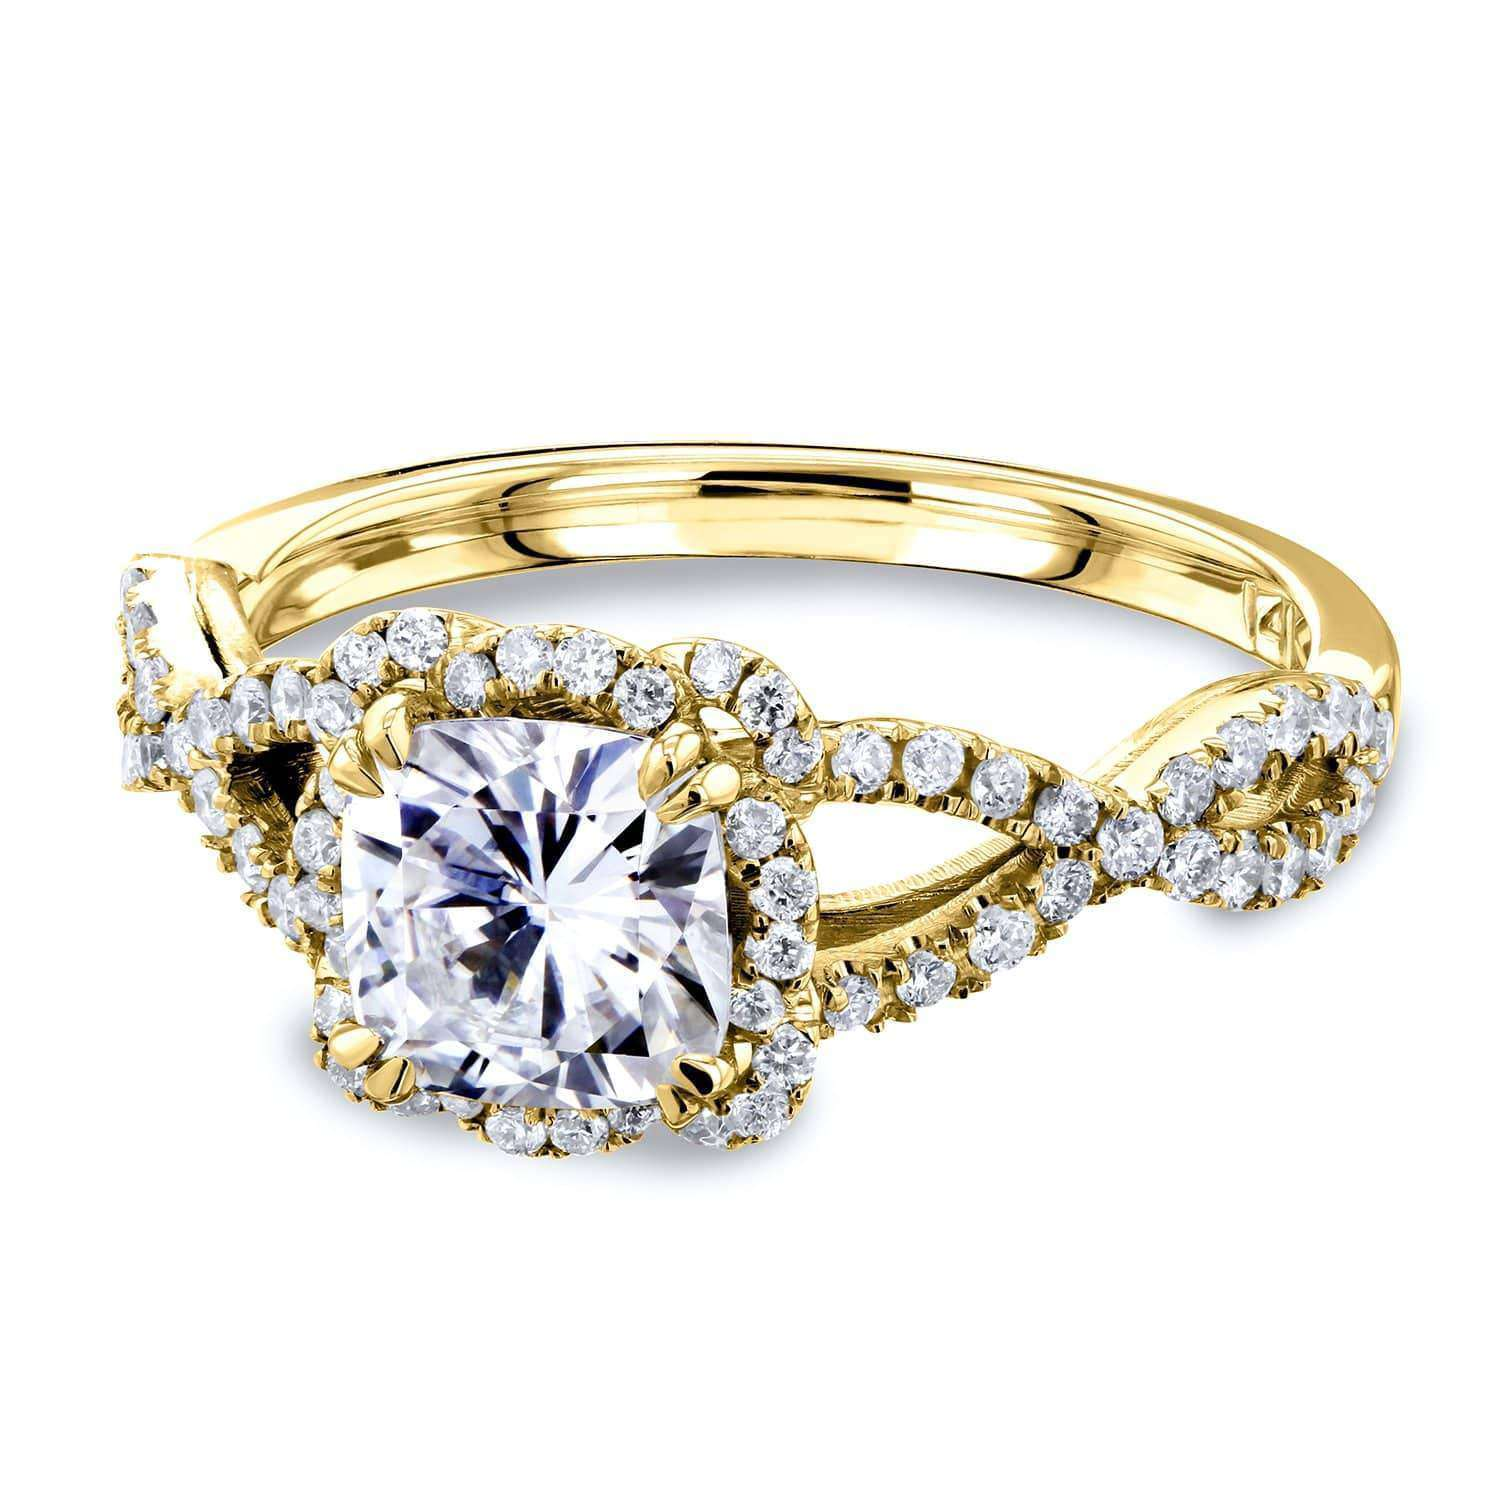 Promos Cushion Moissanite and Diamond Fancy Halo Cross Shank Ring 1-2/5 CTW 14k Gold - yellow-gold 4 Kobelli H-I